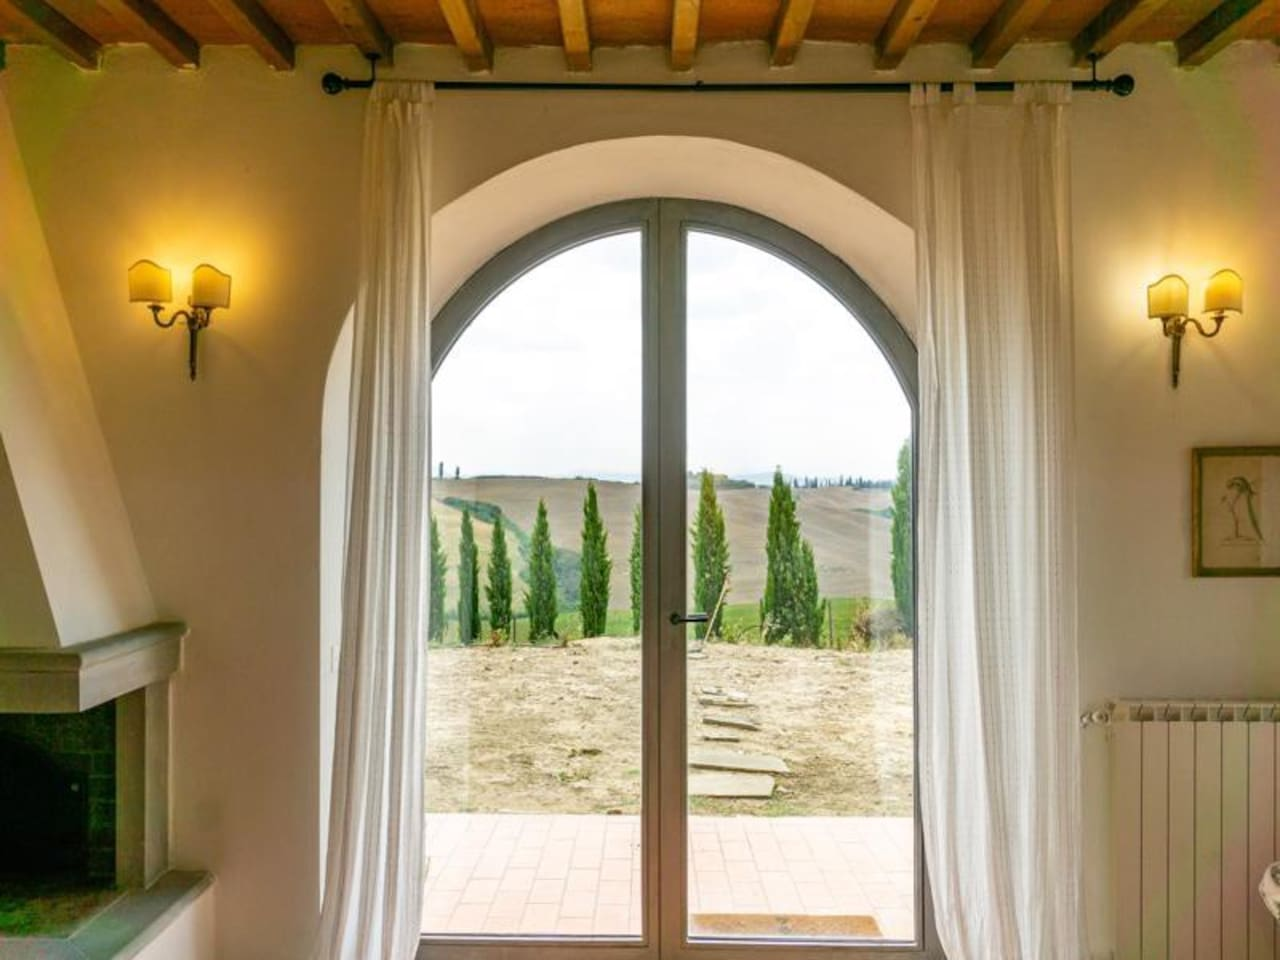 View from the living room, green garden in progress, #cretesenesi out the window